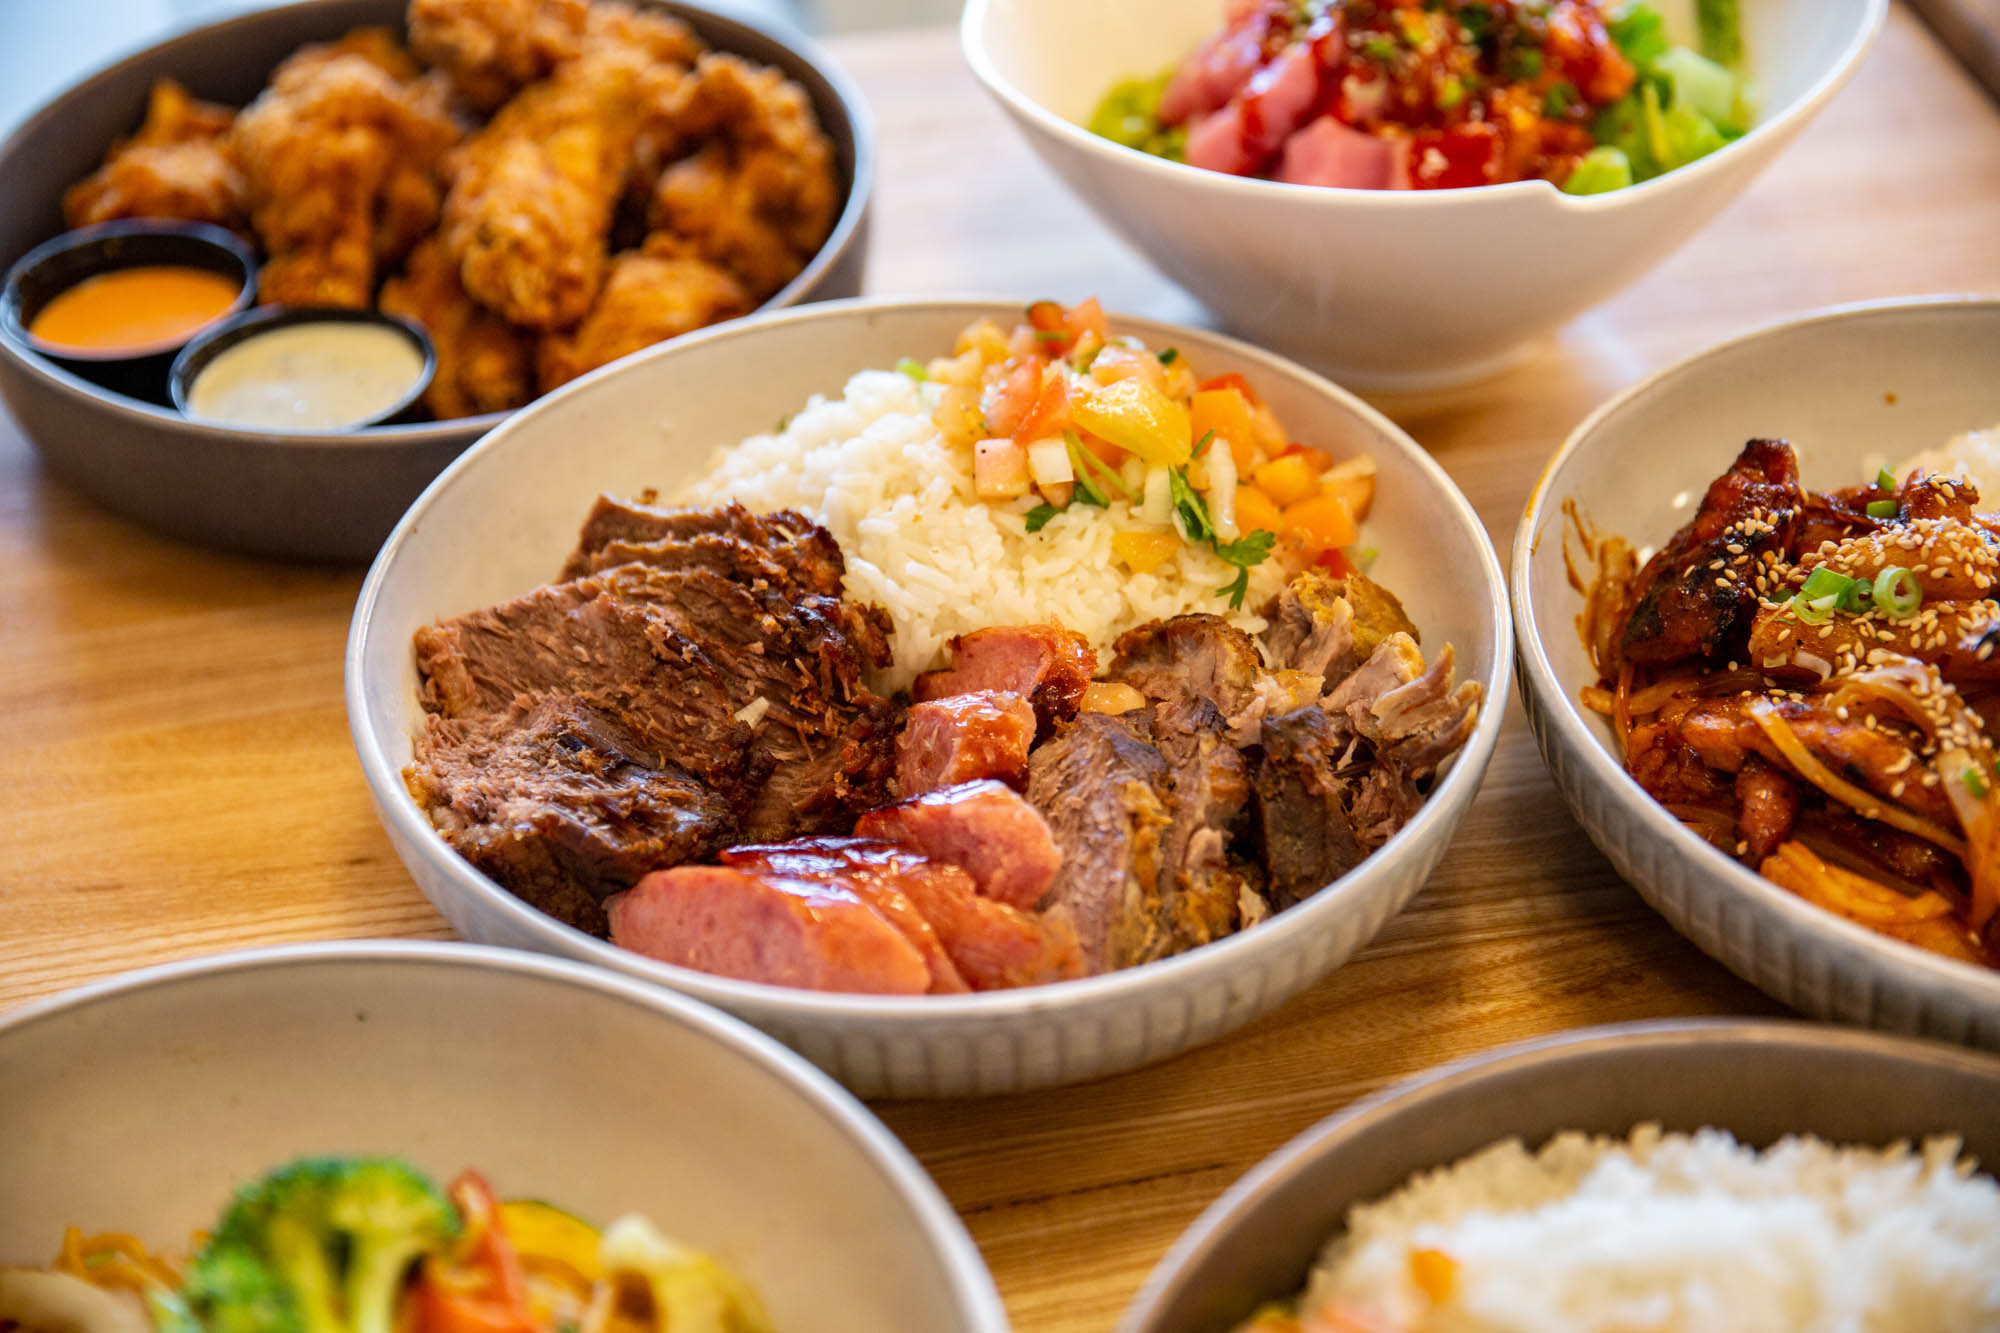 Several dishes from Tá Jóia restaurant, including Korean-style wings and a brisket, slow-cooked pork, and sausage medley with Spanish rice.